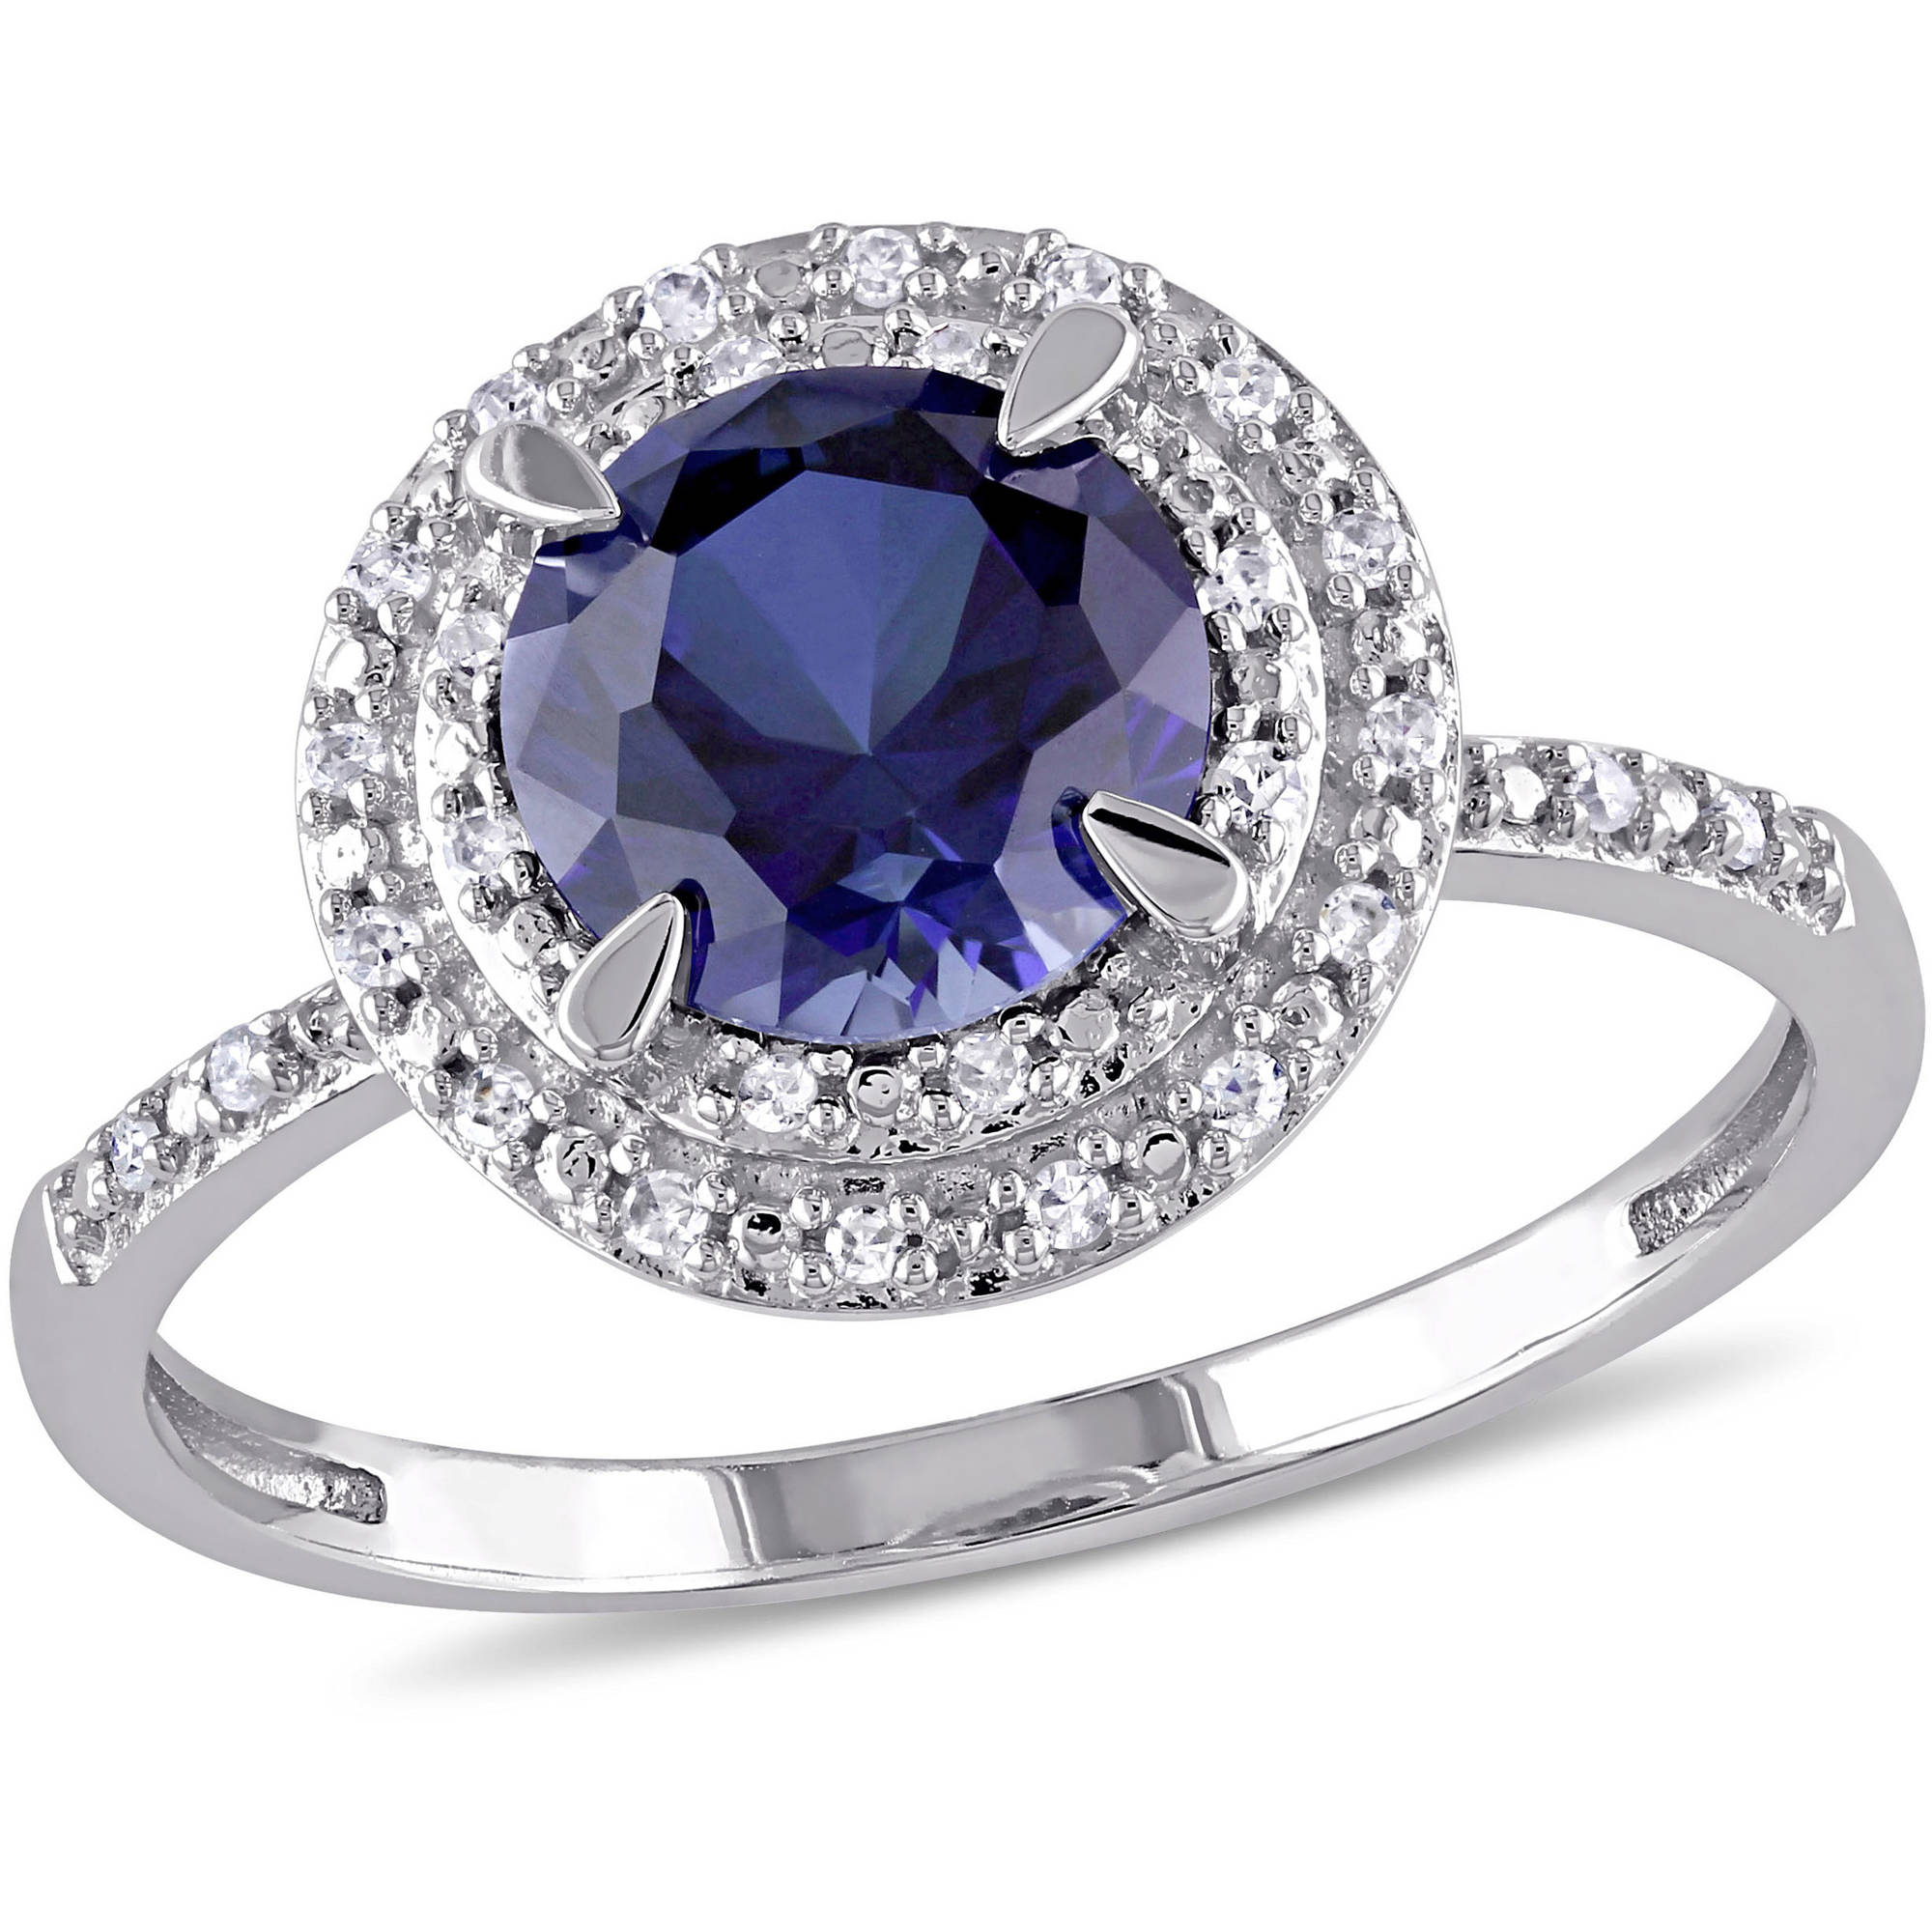 Tangelo 1-5 8 Carat T.G.W. Created Blue Sapphire and 1 10 T.W. Diamond 10kt White Gold Halo Engagement Ring by Tangelo